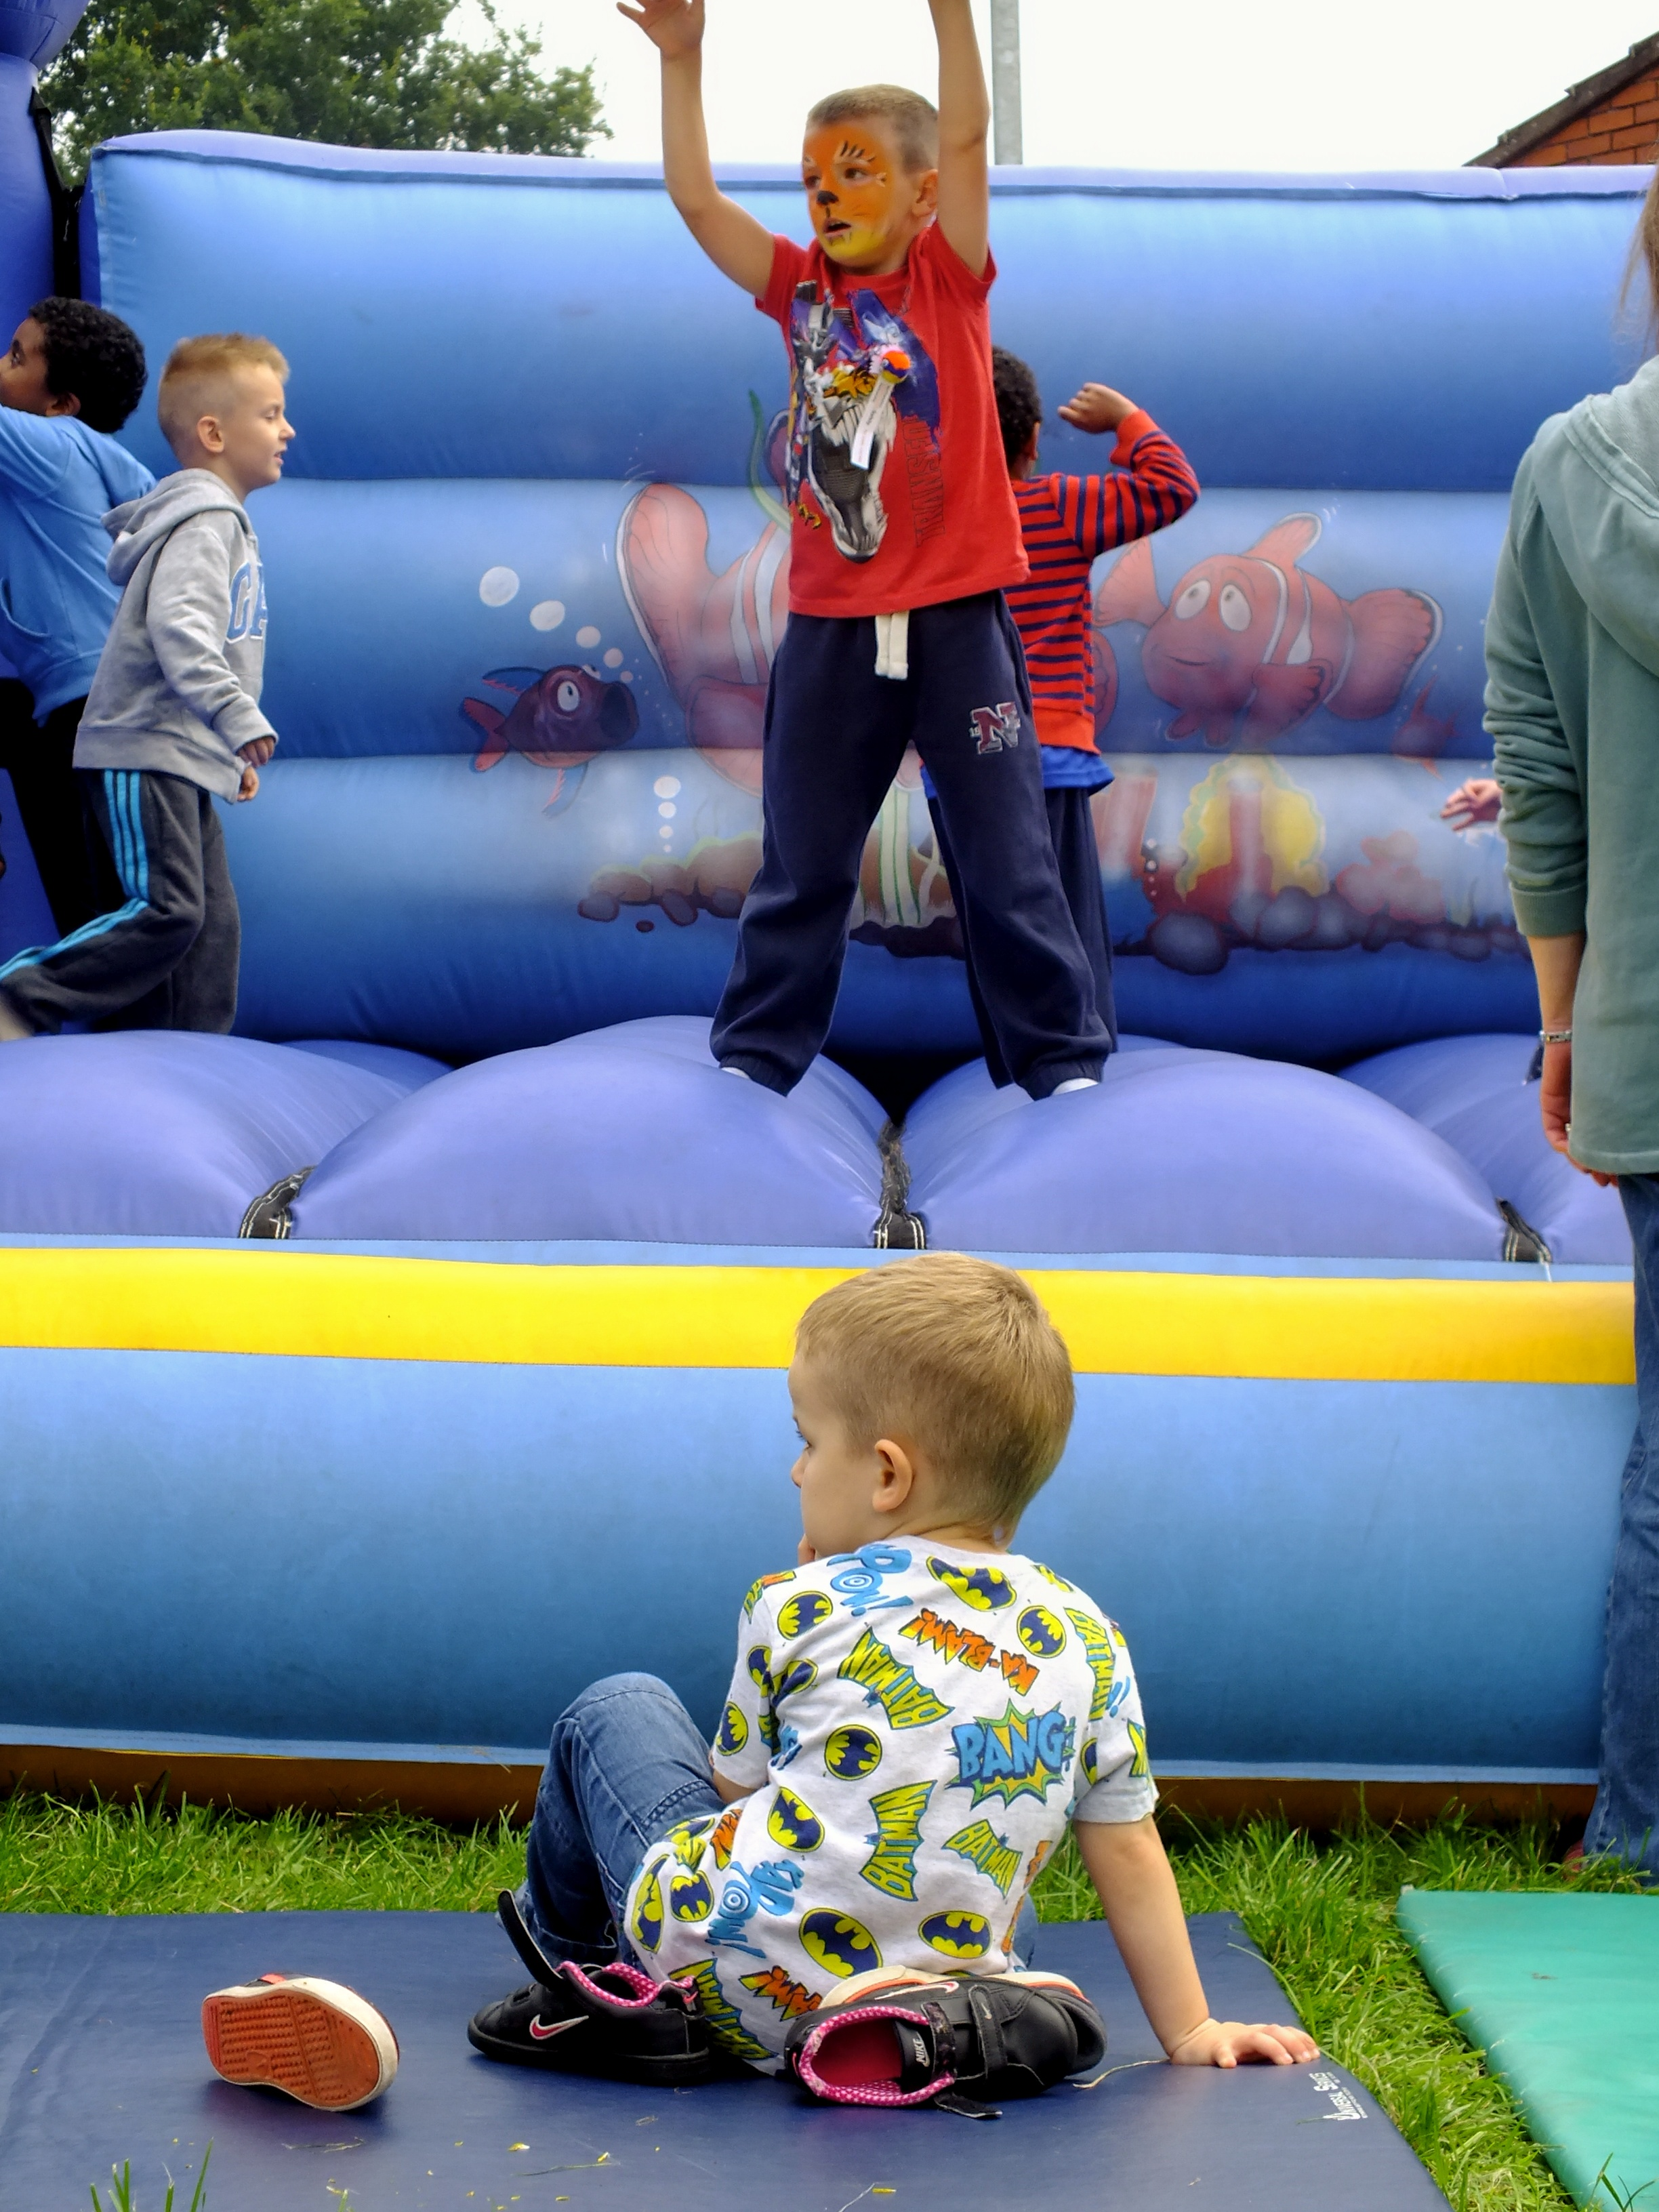 Blackthorn fun day - our place event 2014